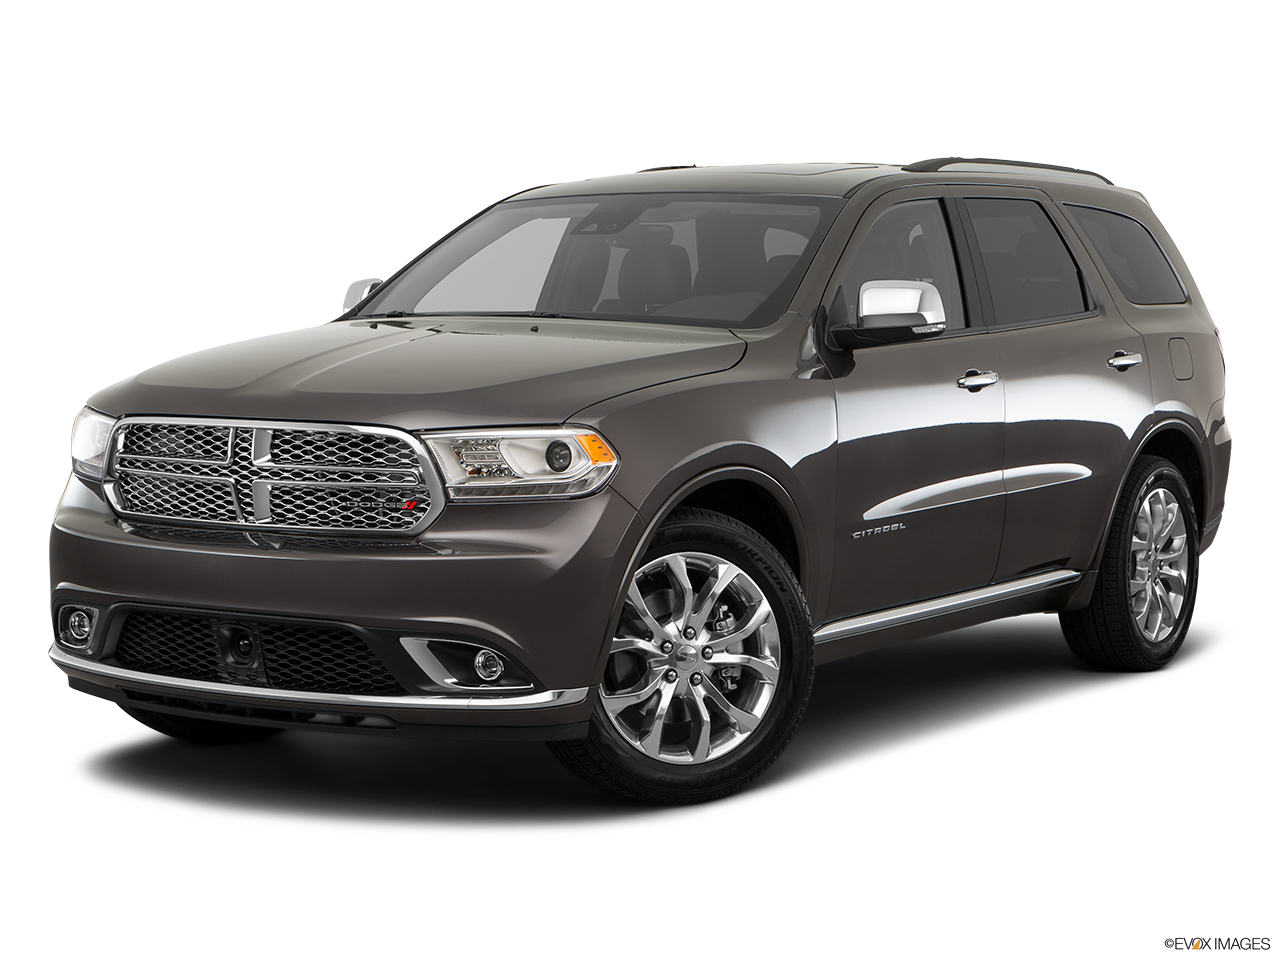 Test Drive A 2017 Dodge Durango at Sherman Dodge Chrysler Jeep RAM Chicago